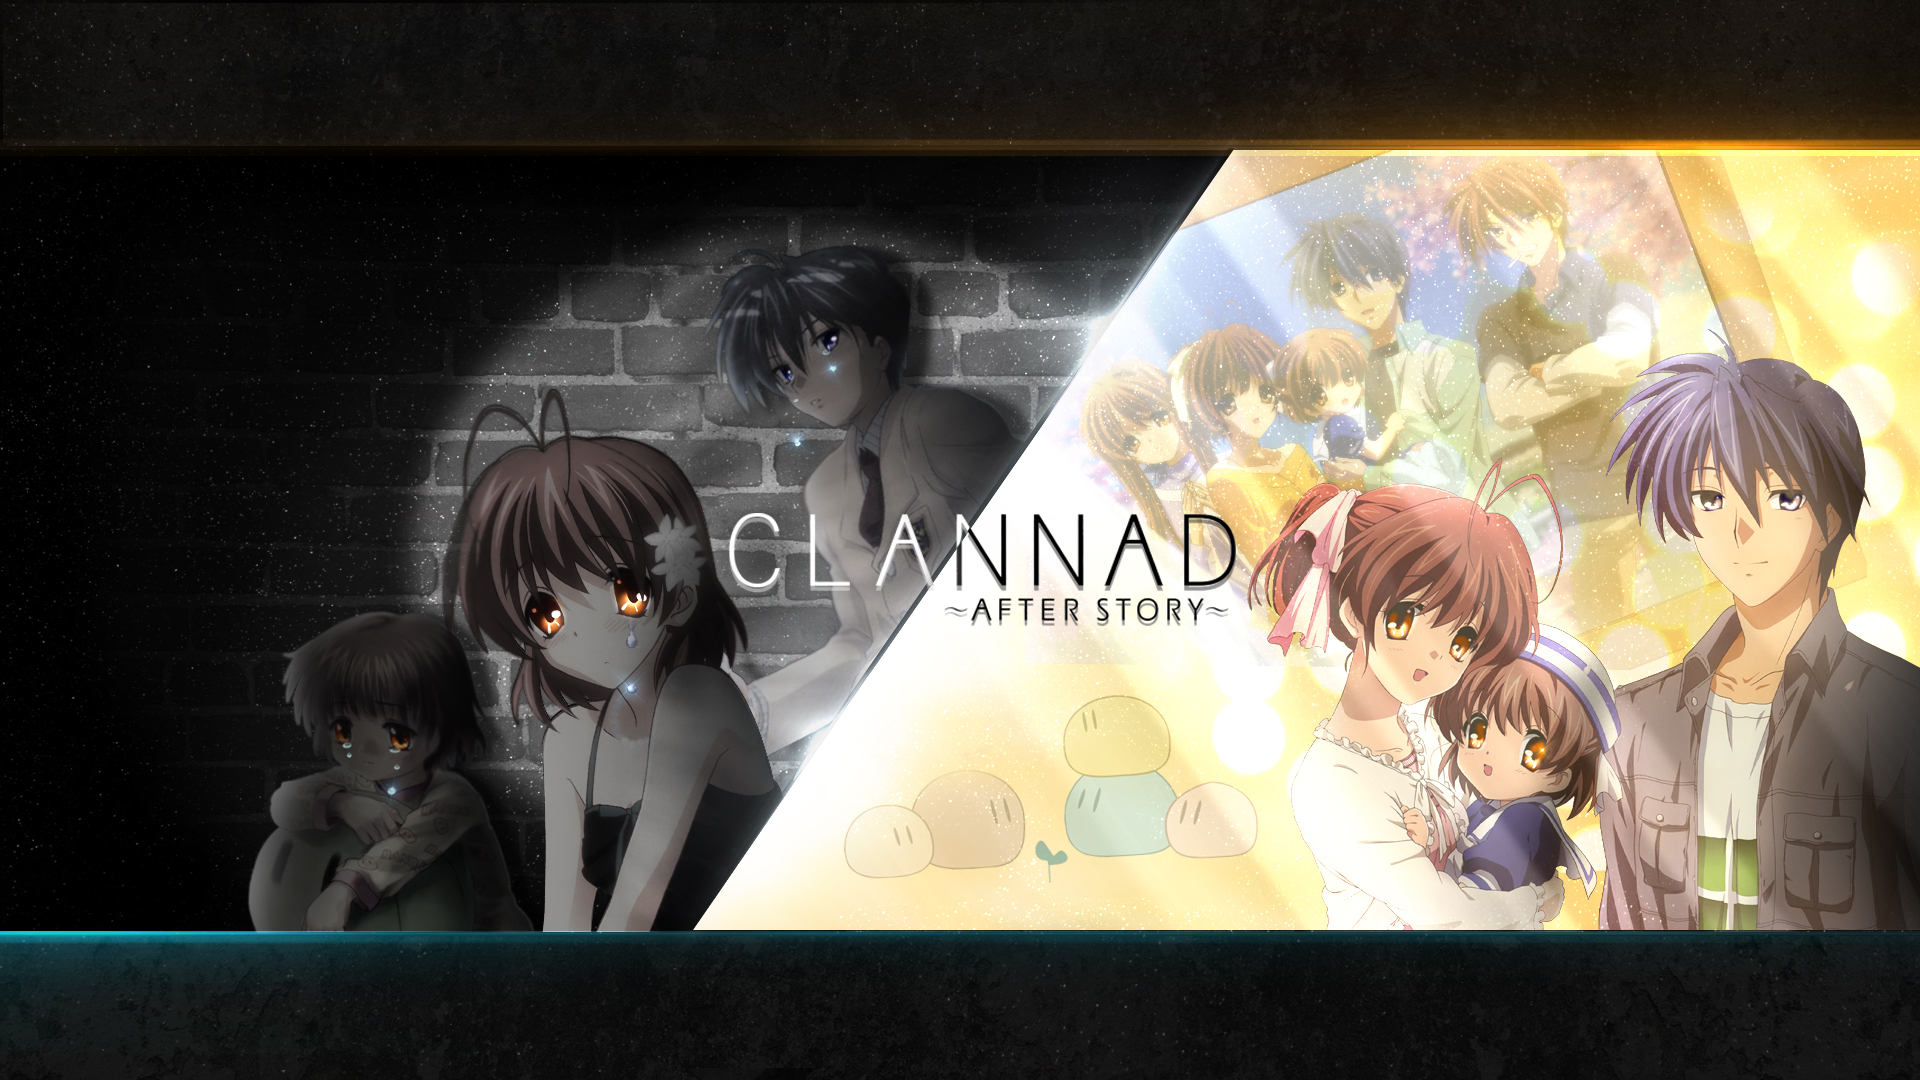 Wallpaper Clannad Sad And Happy Life By Adouken94 On Deviantart